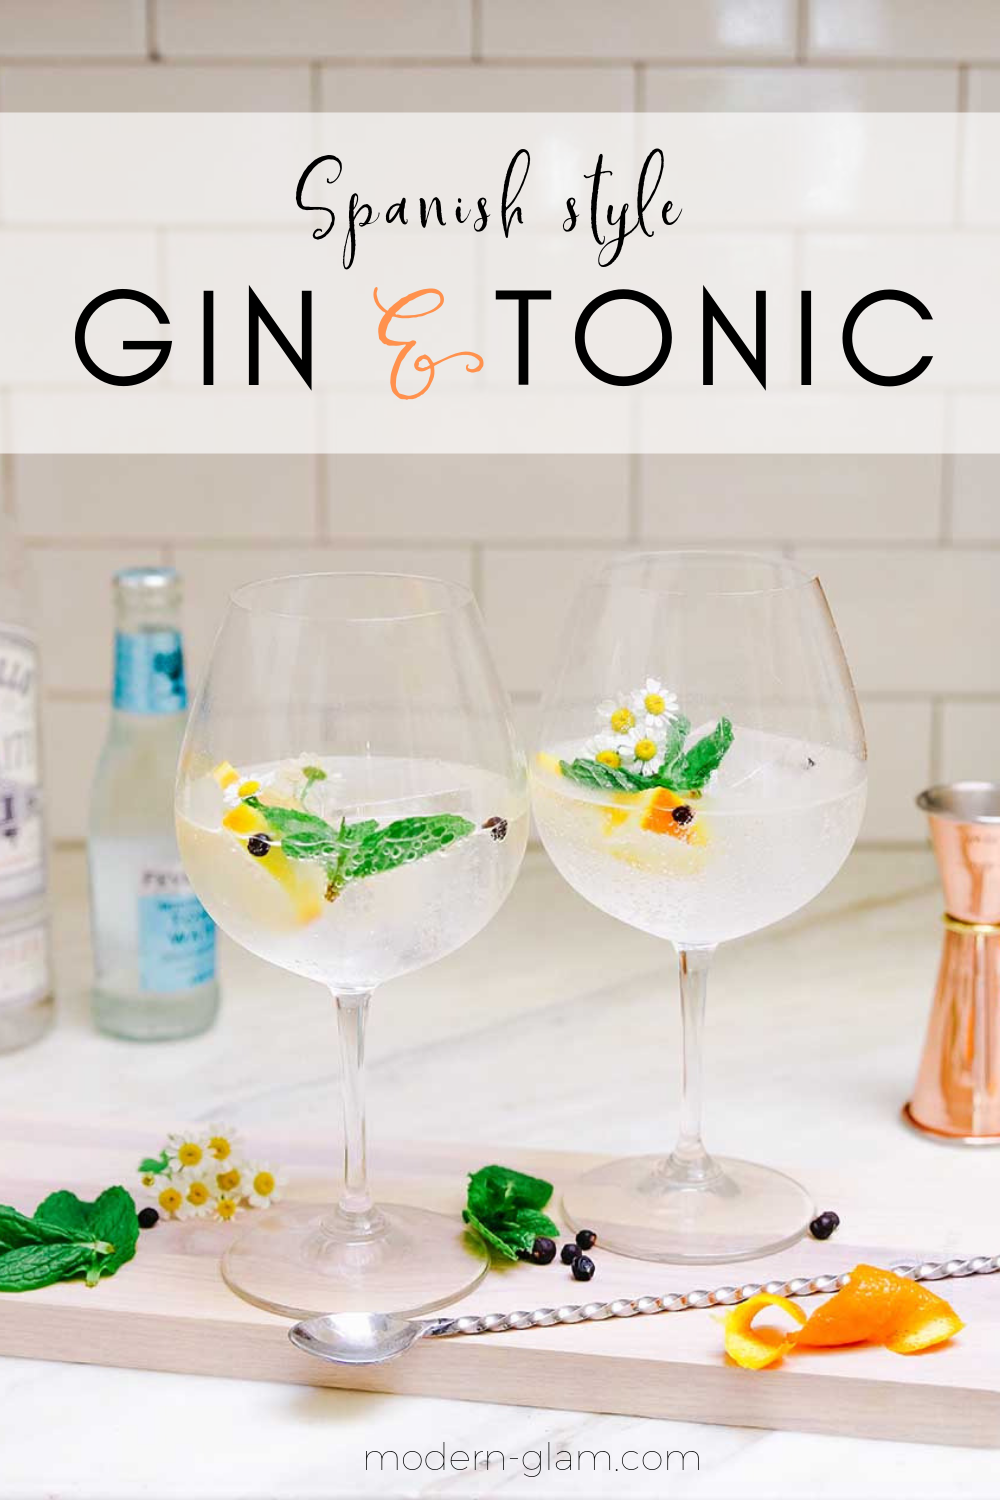 spanish style gin and tonic recipe